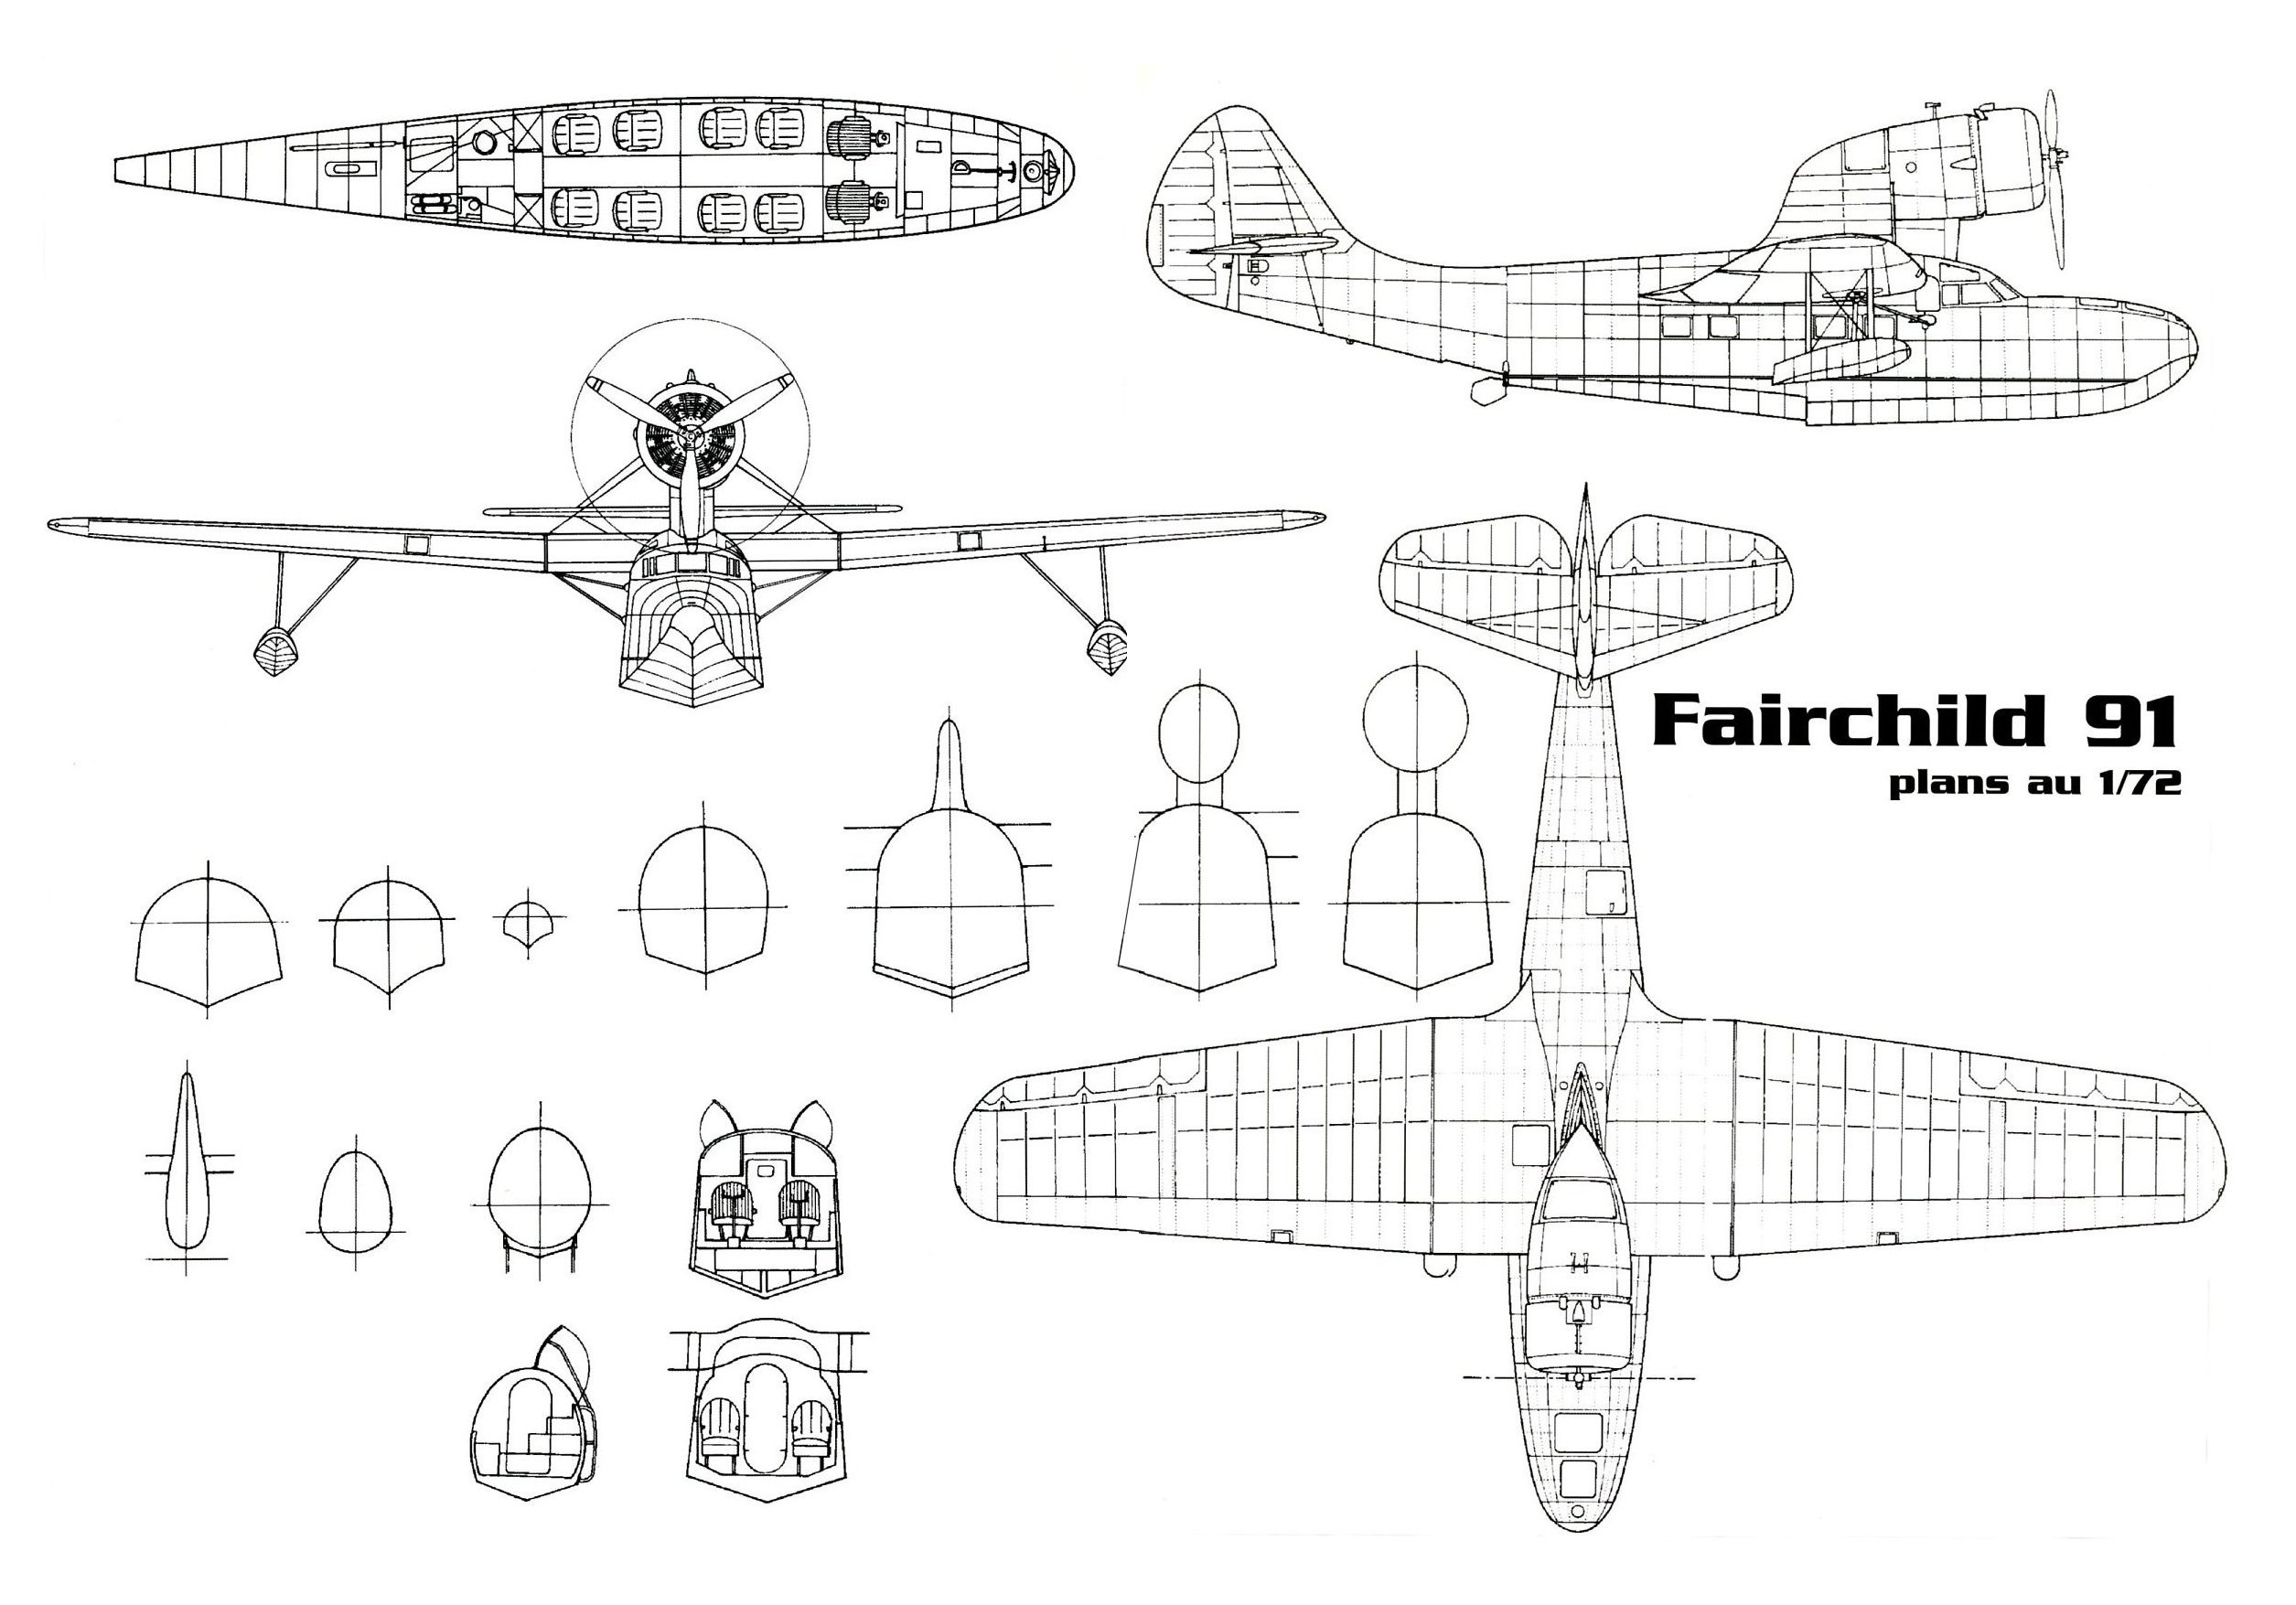 Fairchild 91 blueprints